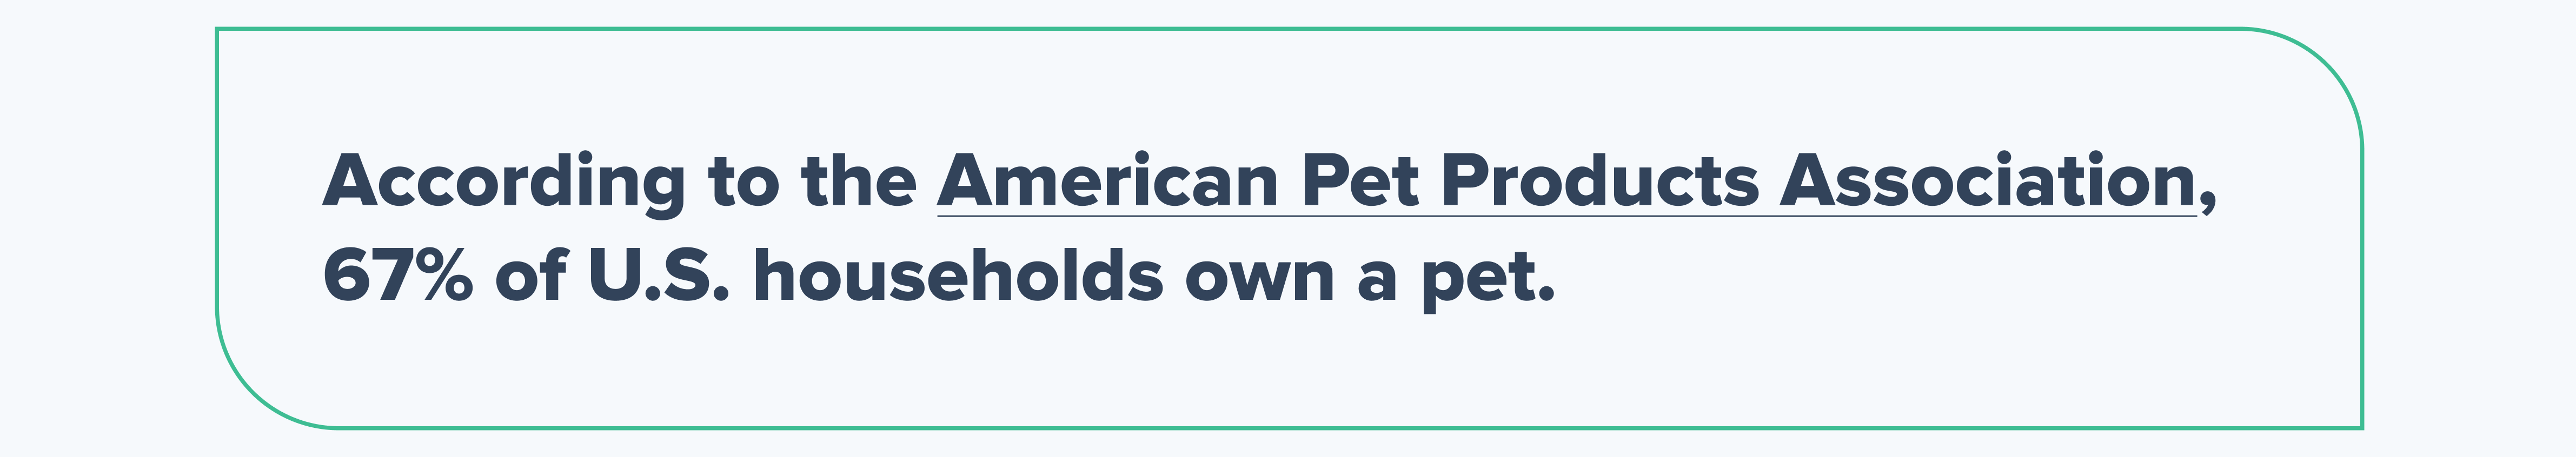 67% of U.S. households own a pet